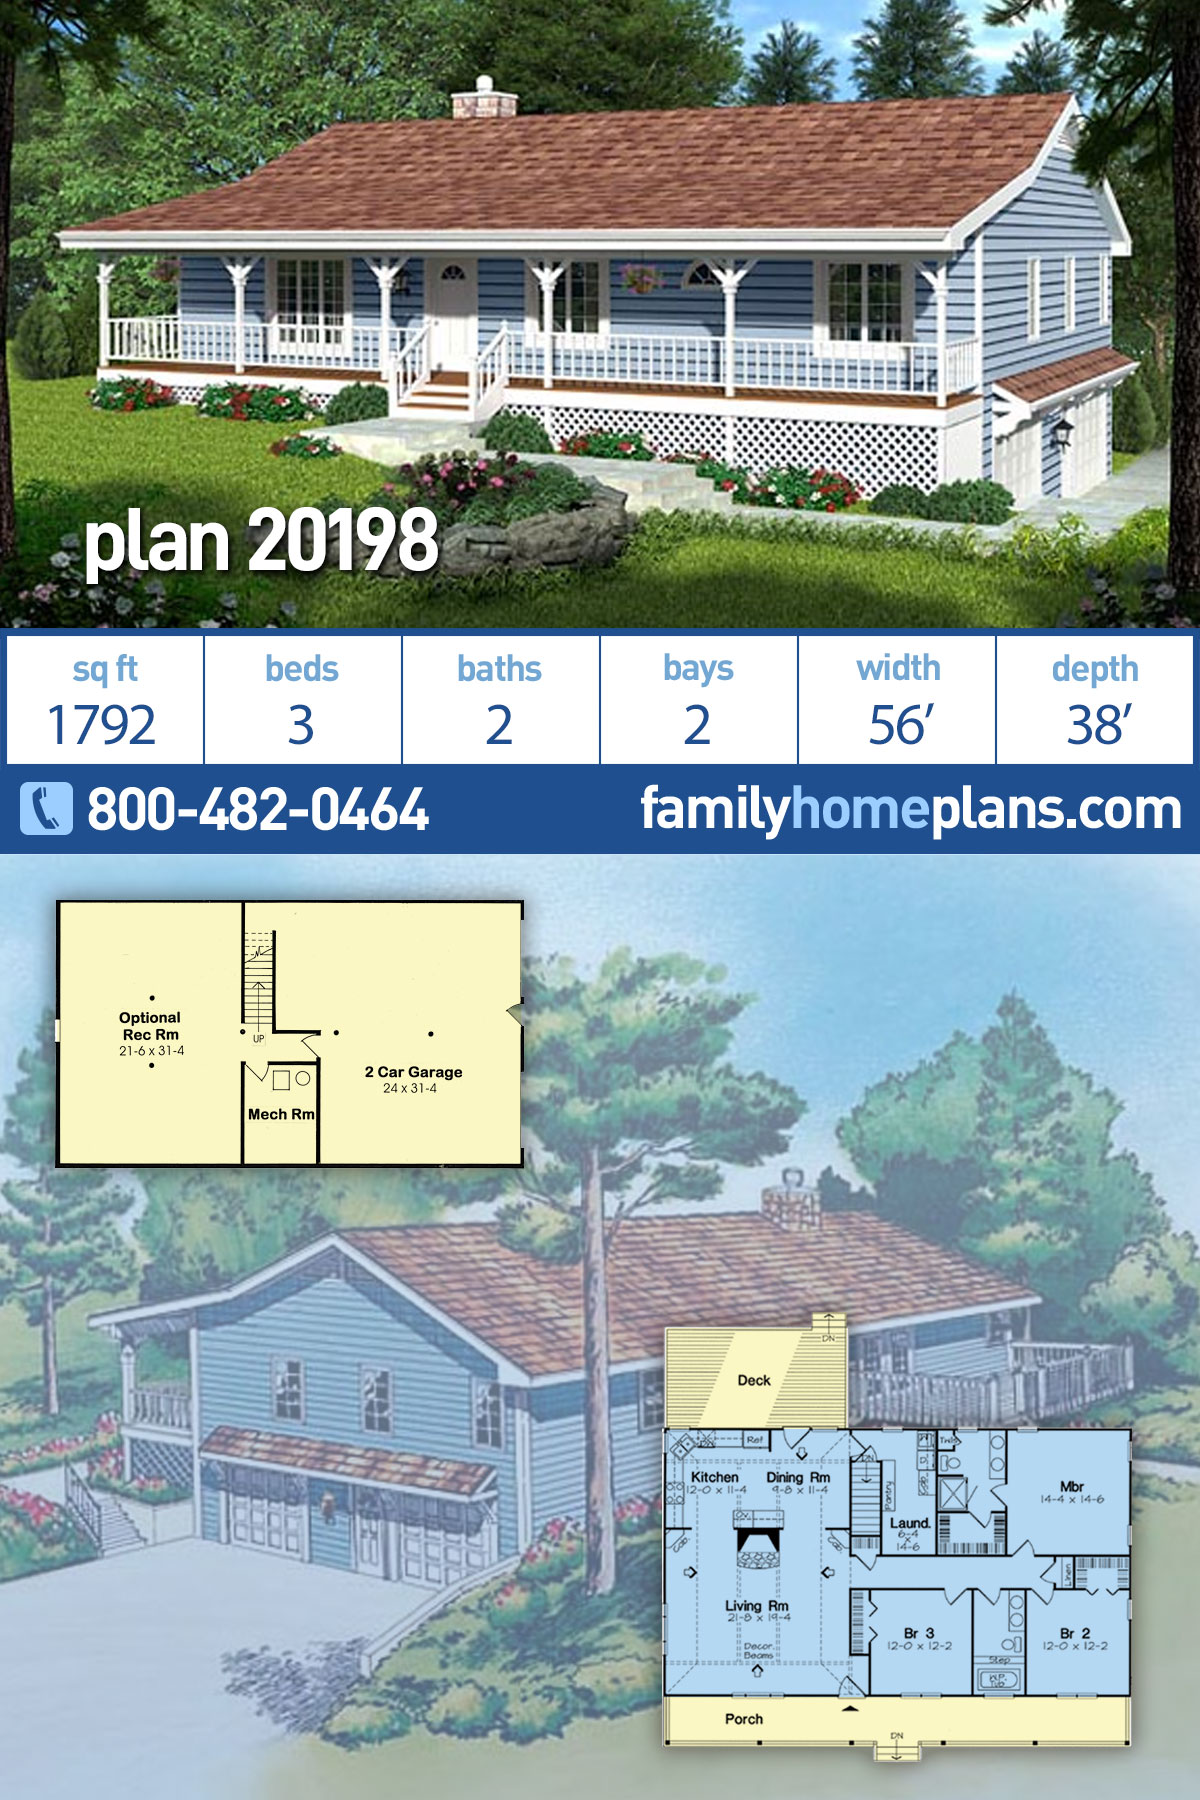 Country, Traditional House Plan 20198 with 3 Beds, 2 Baths, 2 Car Garage